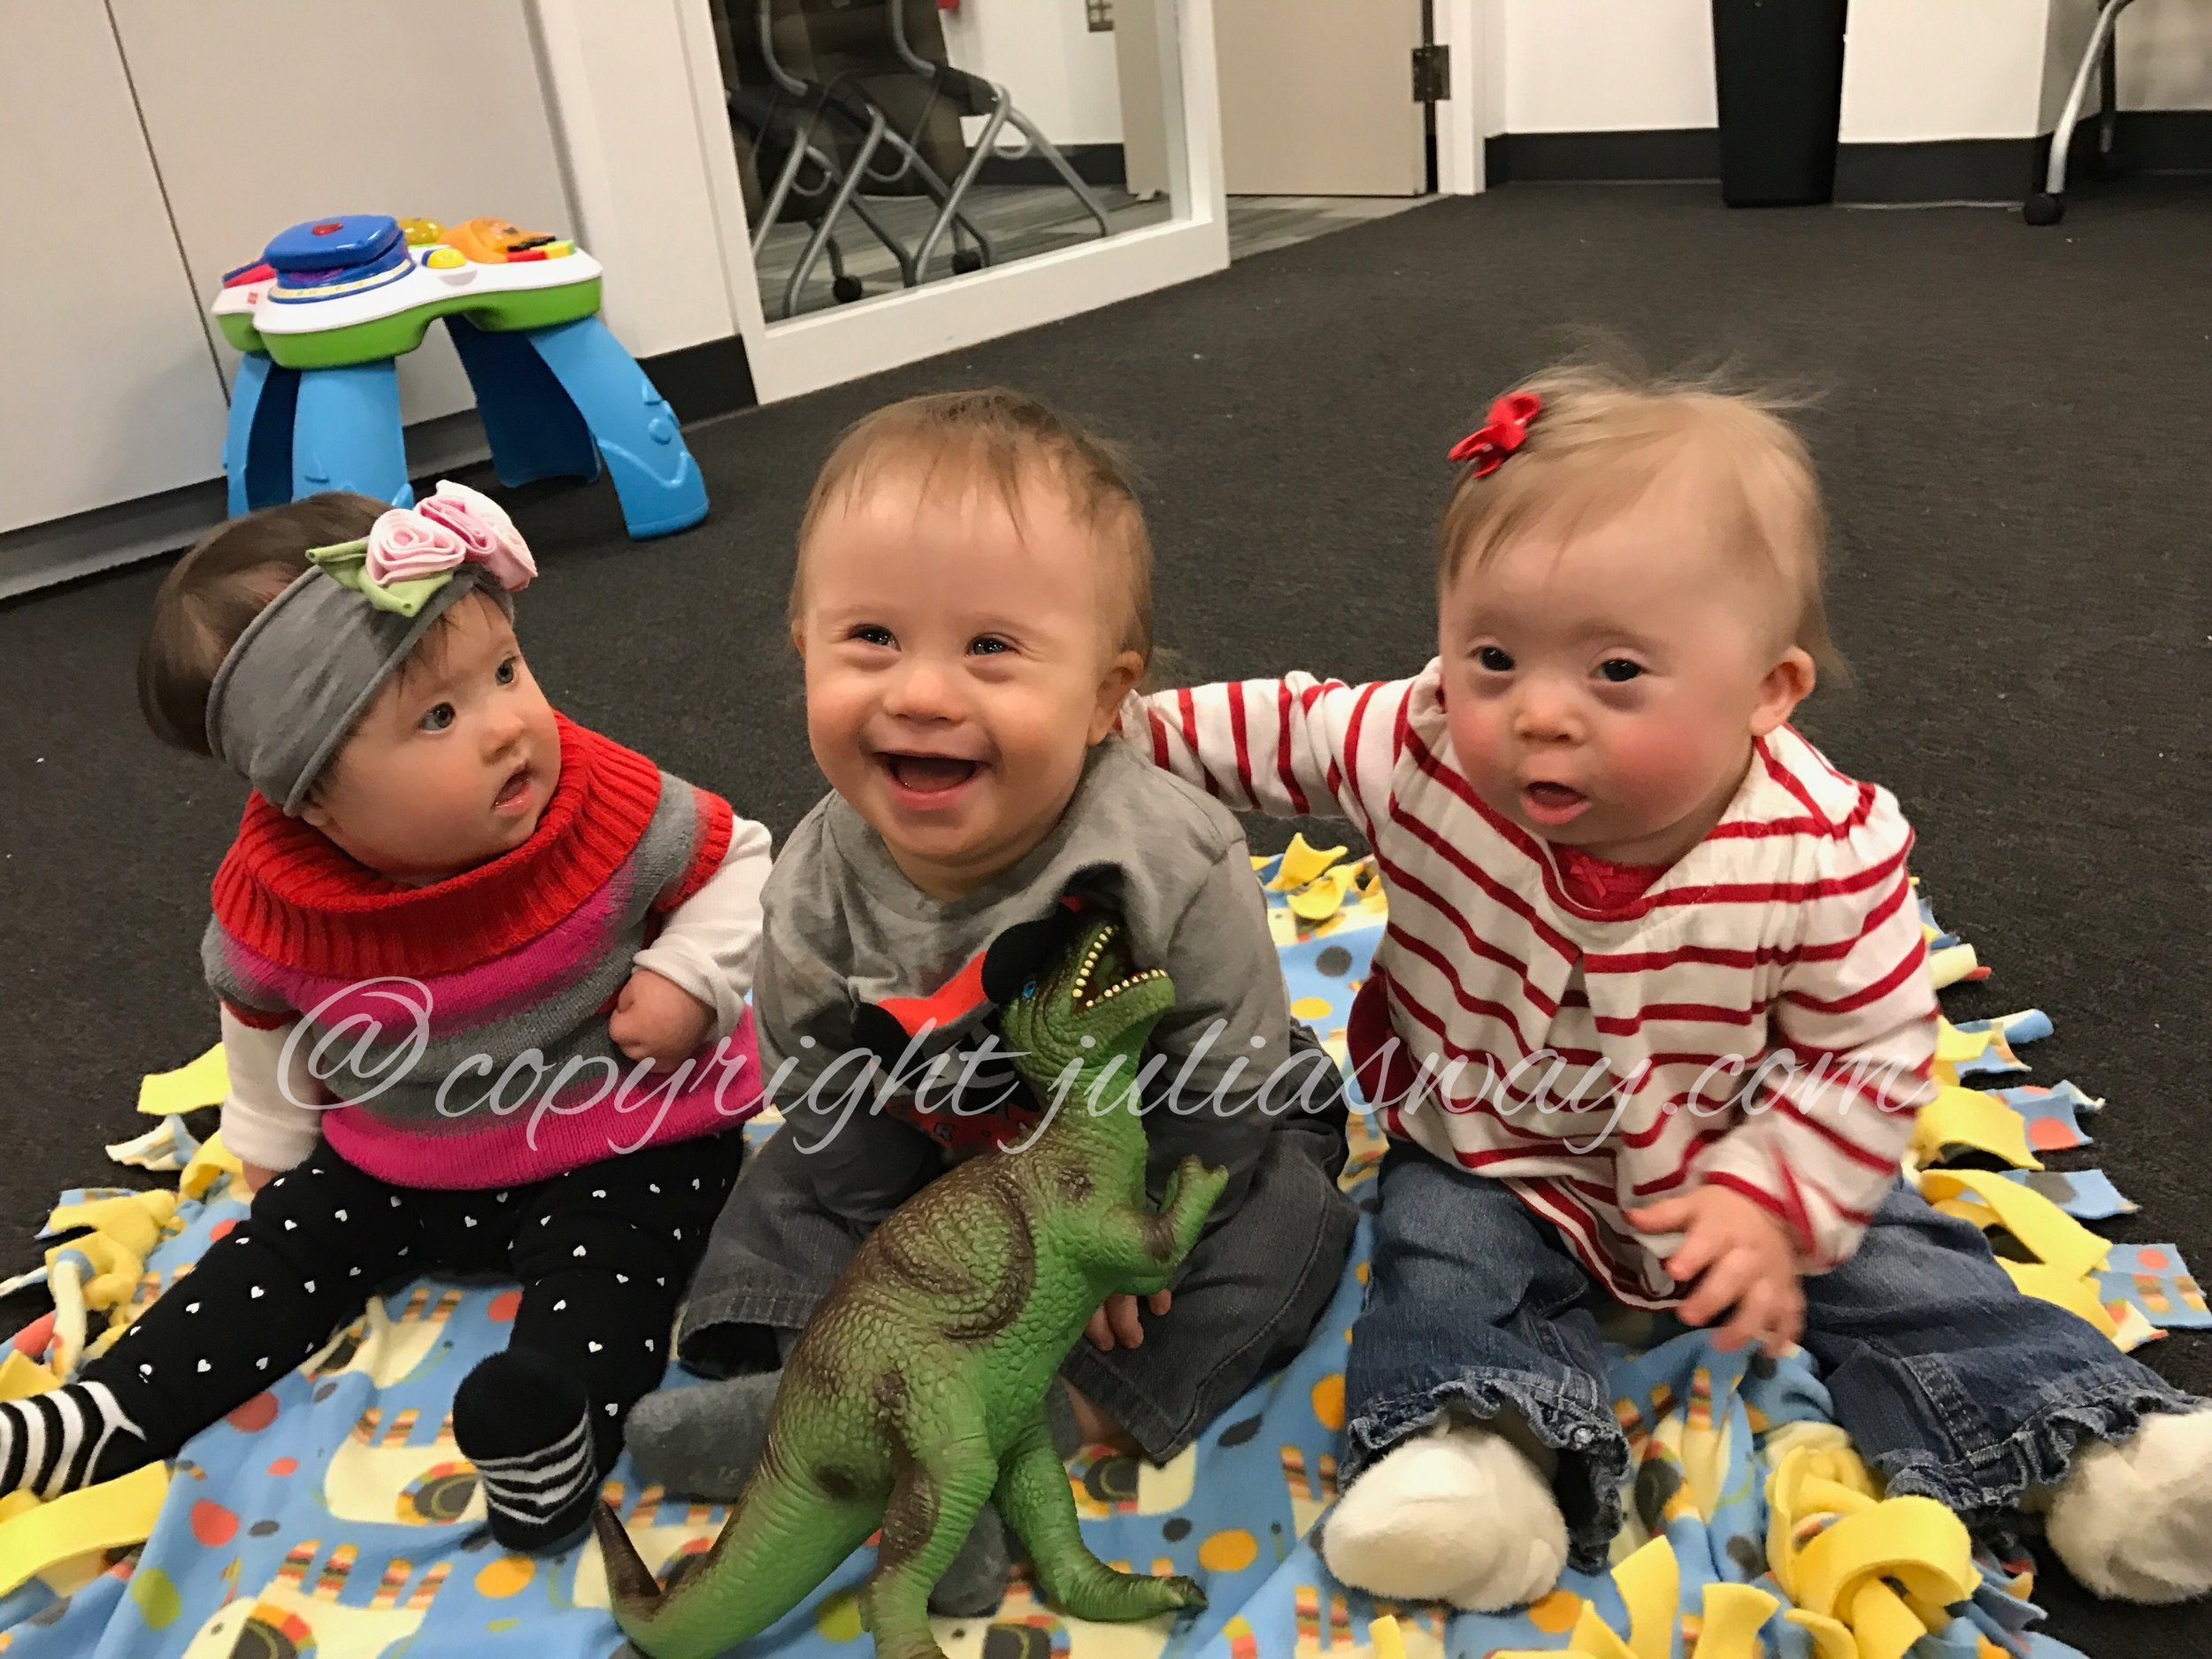 Julia Grace and her friends, rocking the extra chromosomes.